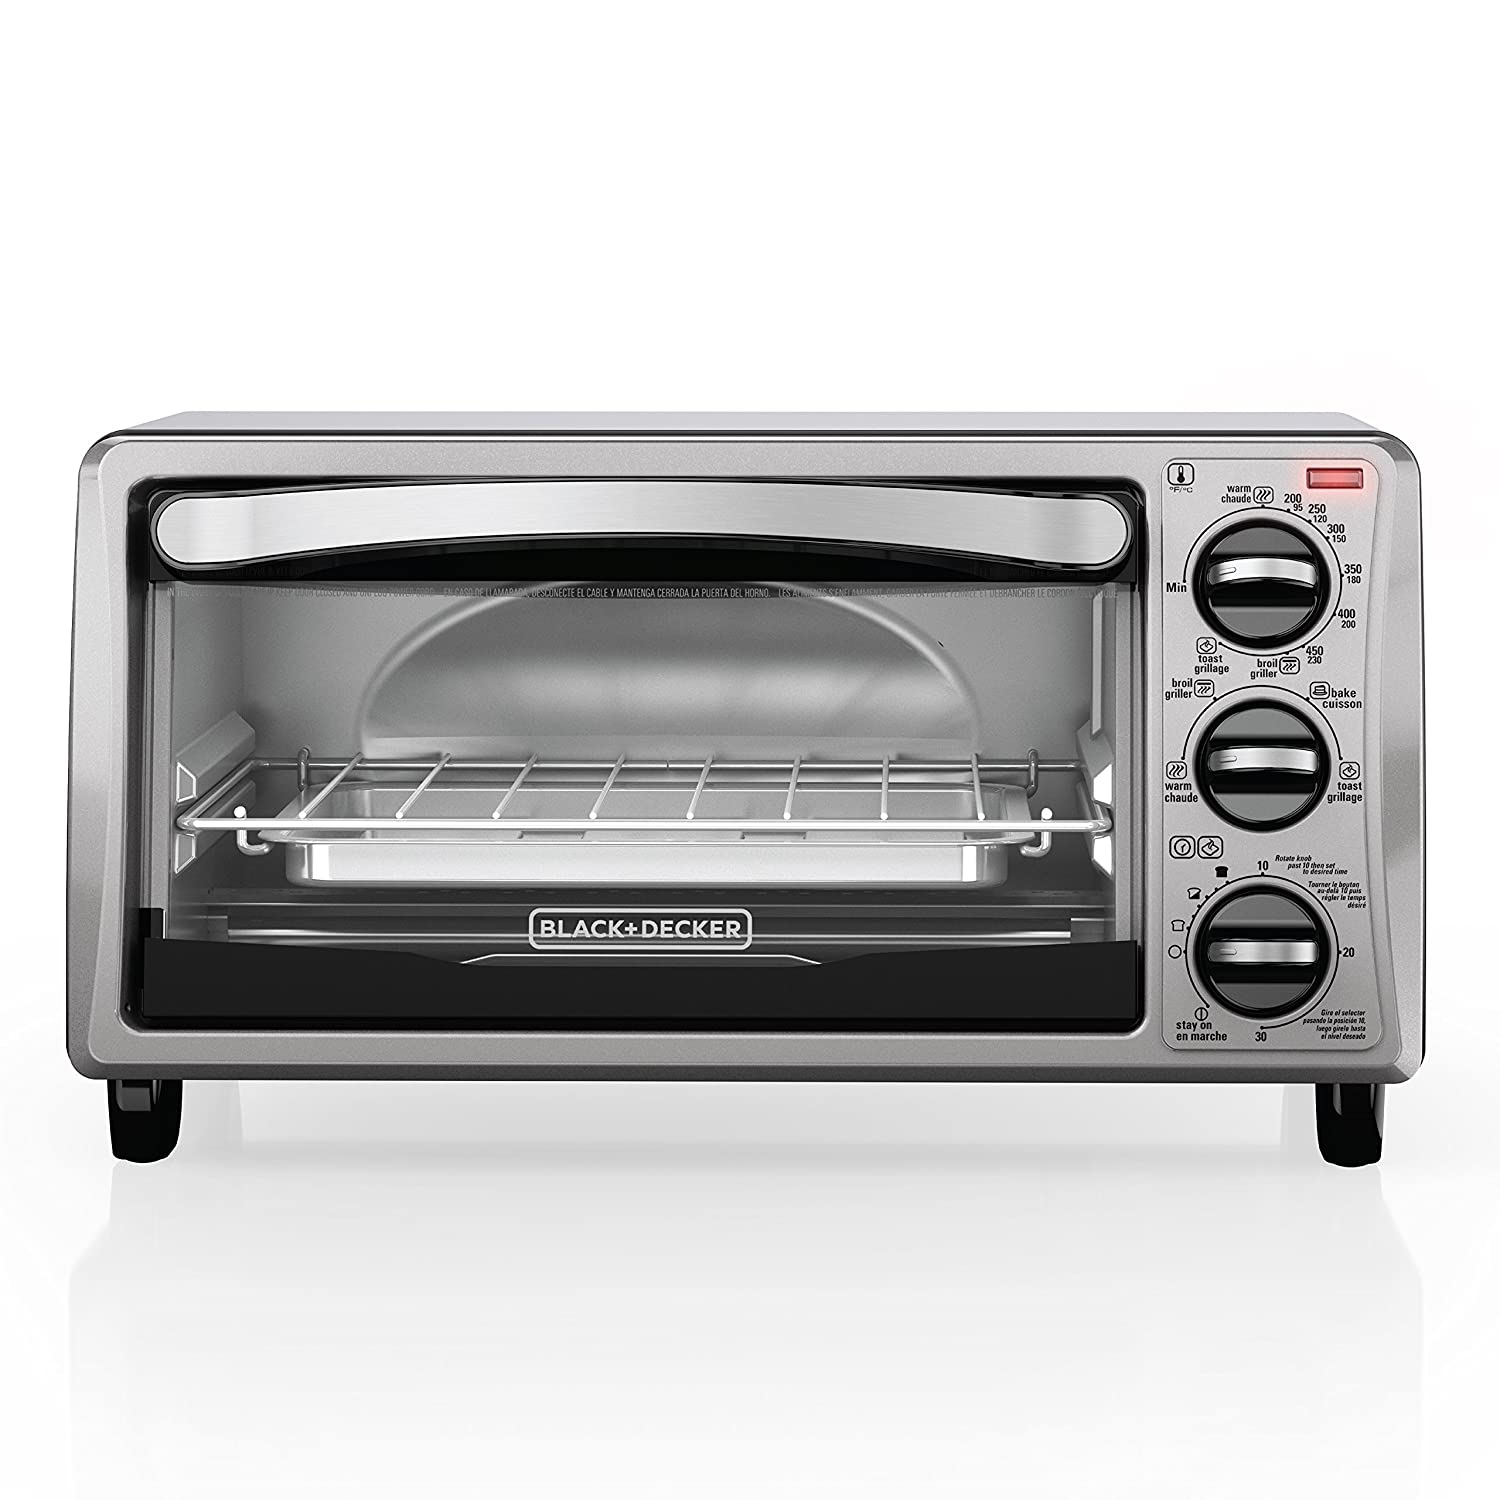 Best Toaster Oven 2018 2019 Top Rated Toaster Ovens And